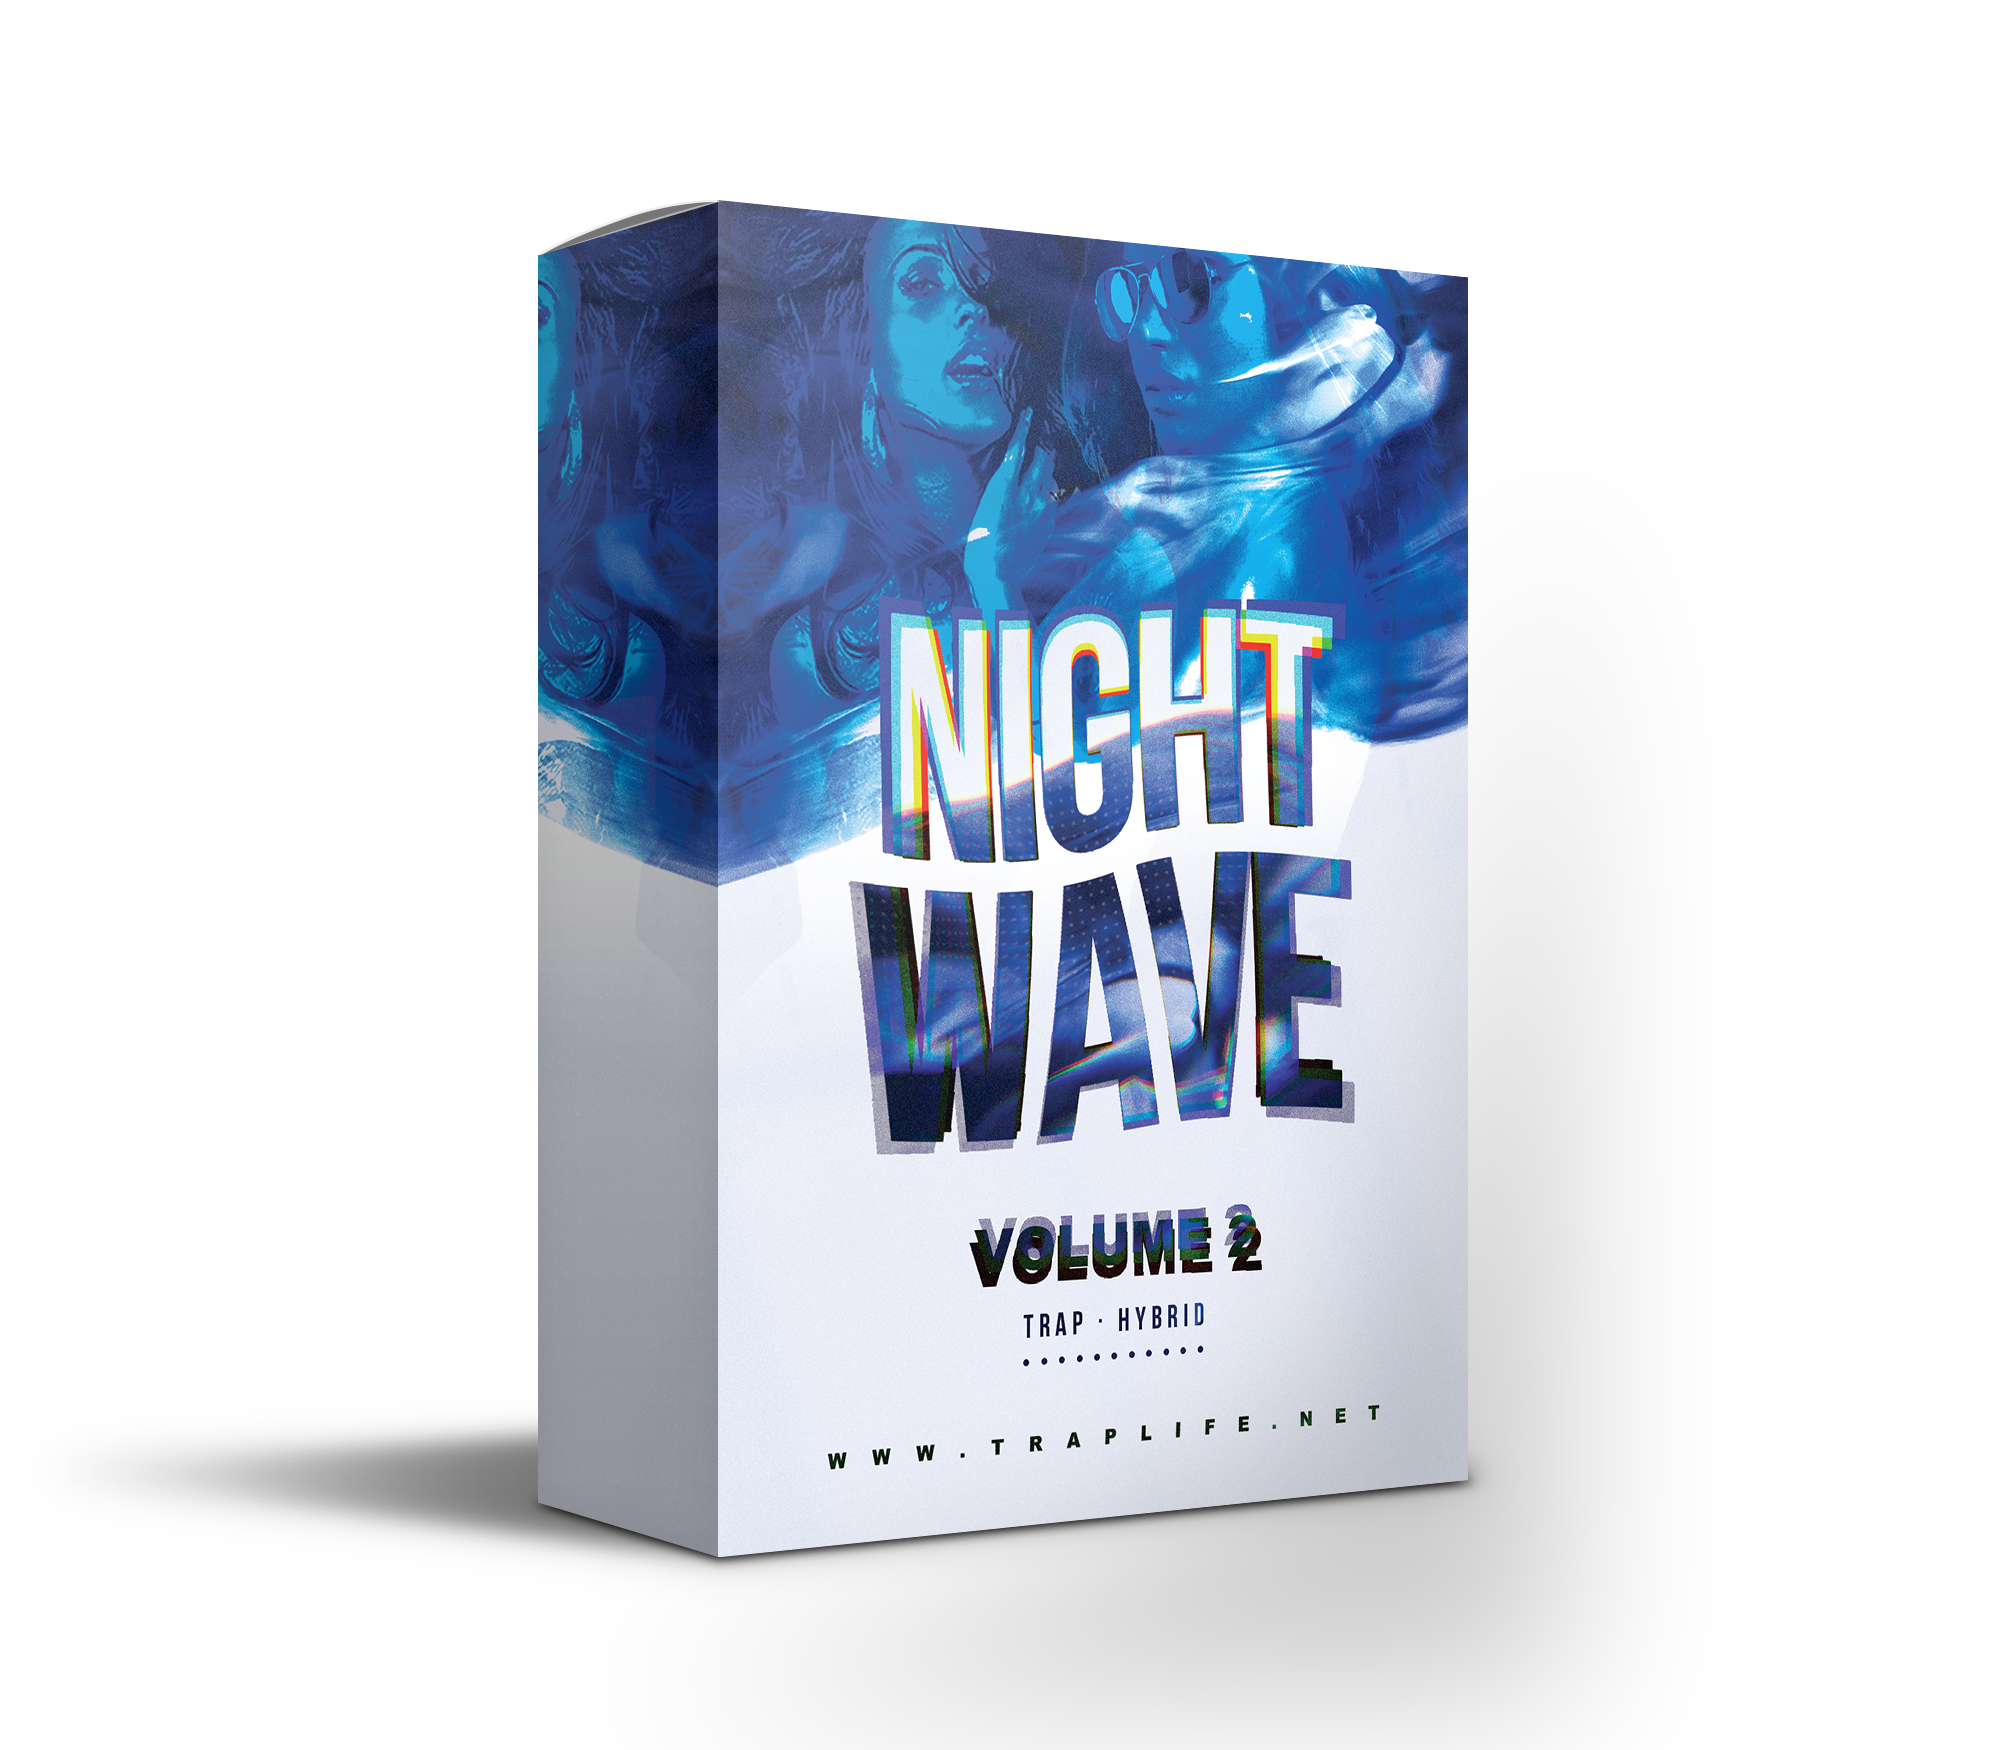 NIGHT WAVE Vol. 2